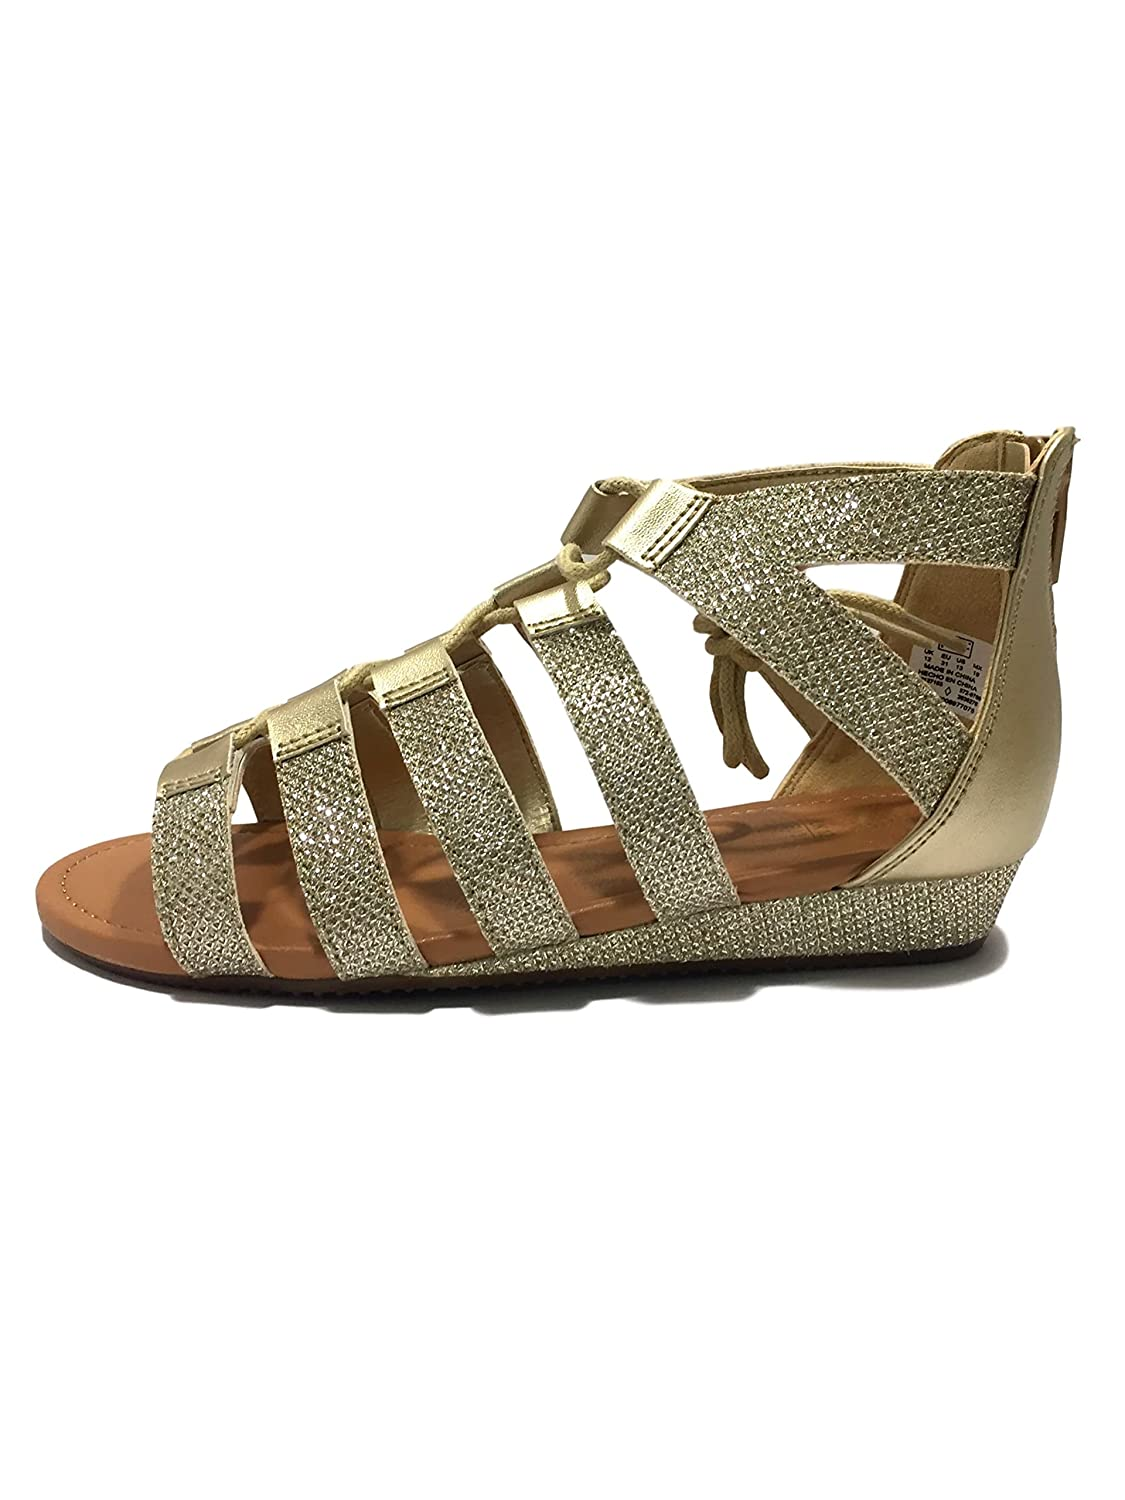 Girls Kids Childrens Gold Strappy Faux Leather Summer Holiday Gladiator Diamante Sandals Beach Zip Lace Up Shoes Footwear Size 10-5